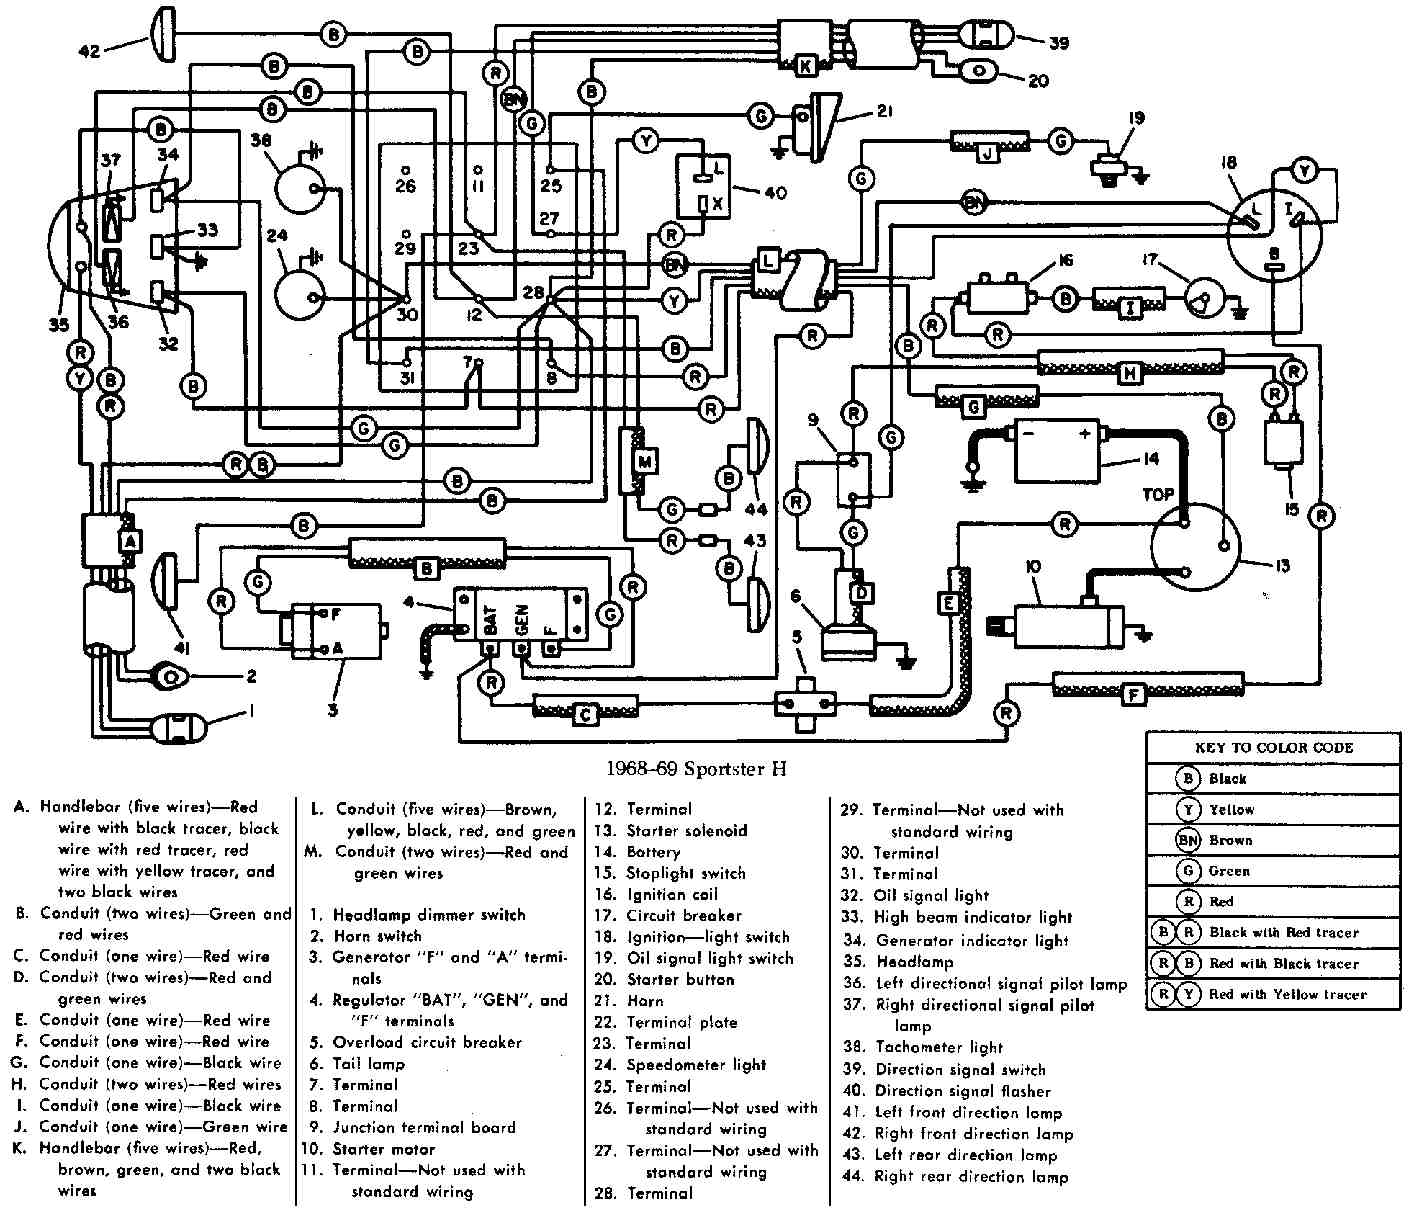 99 dodge radio wiring diagram with Harley Davidson Sportster 1968 1969 on 356ad 1999 Dodge Stratus Lost Radio Dome Light Power further Discussion T2550 ds548344 as well Discussion D630 ds546768 further 1983 1988 Ford Bronco Ii Start Ignition furthermore 118839 2006 Ram 1500 Standard Radio Wiring Diagram 2.